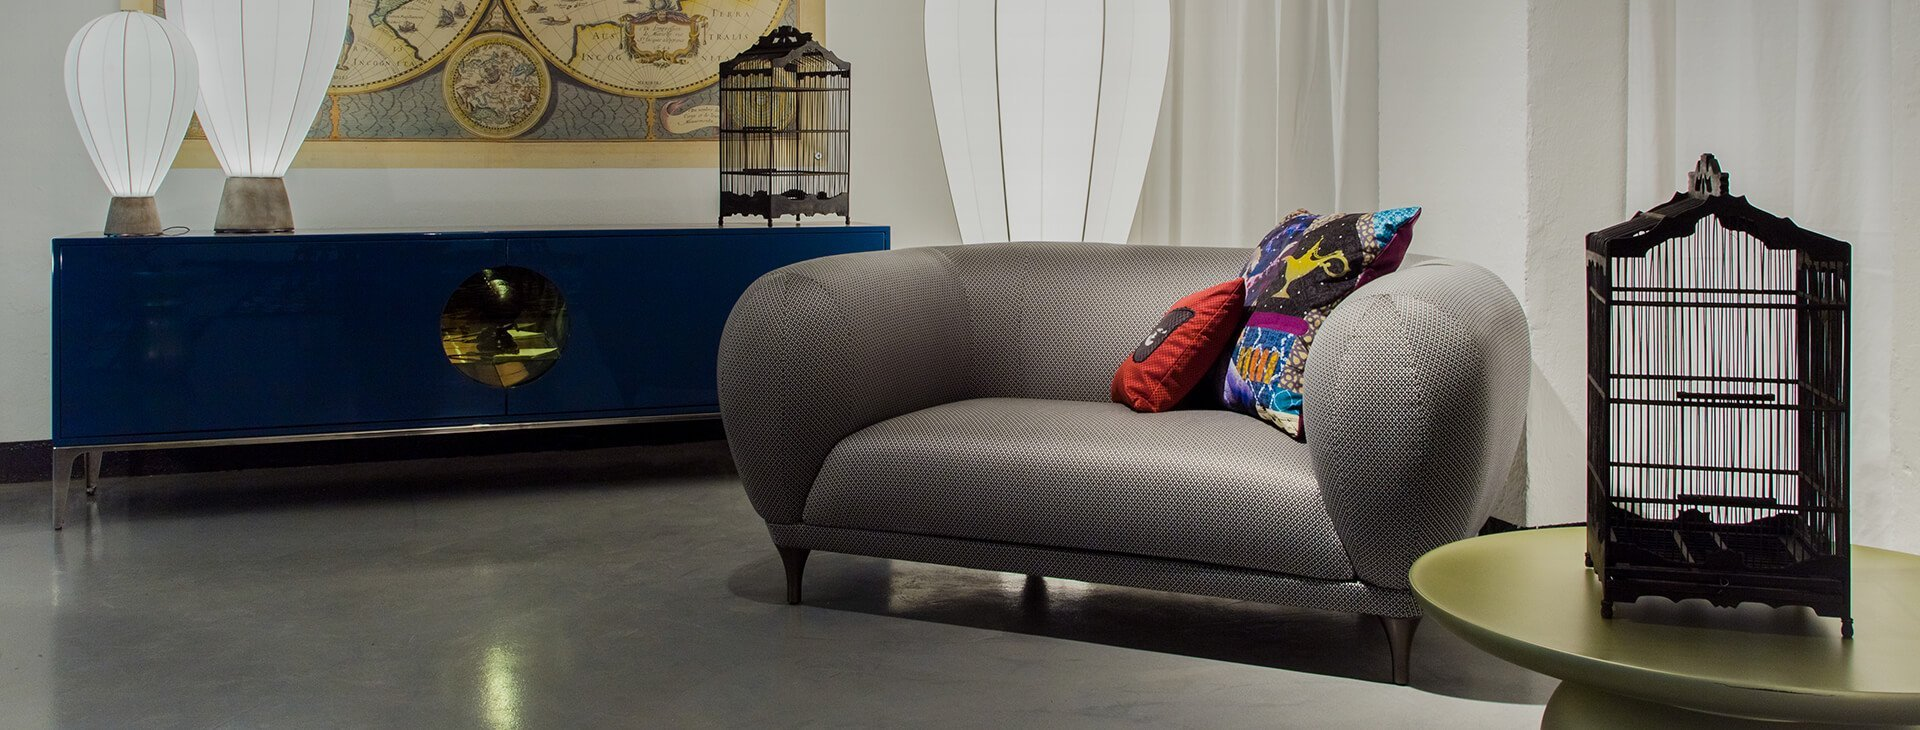 roche bobois ihre brands im stilwerk hamburg. Black Bedroom Furniture Sets. Home Design Ideas